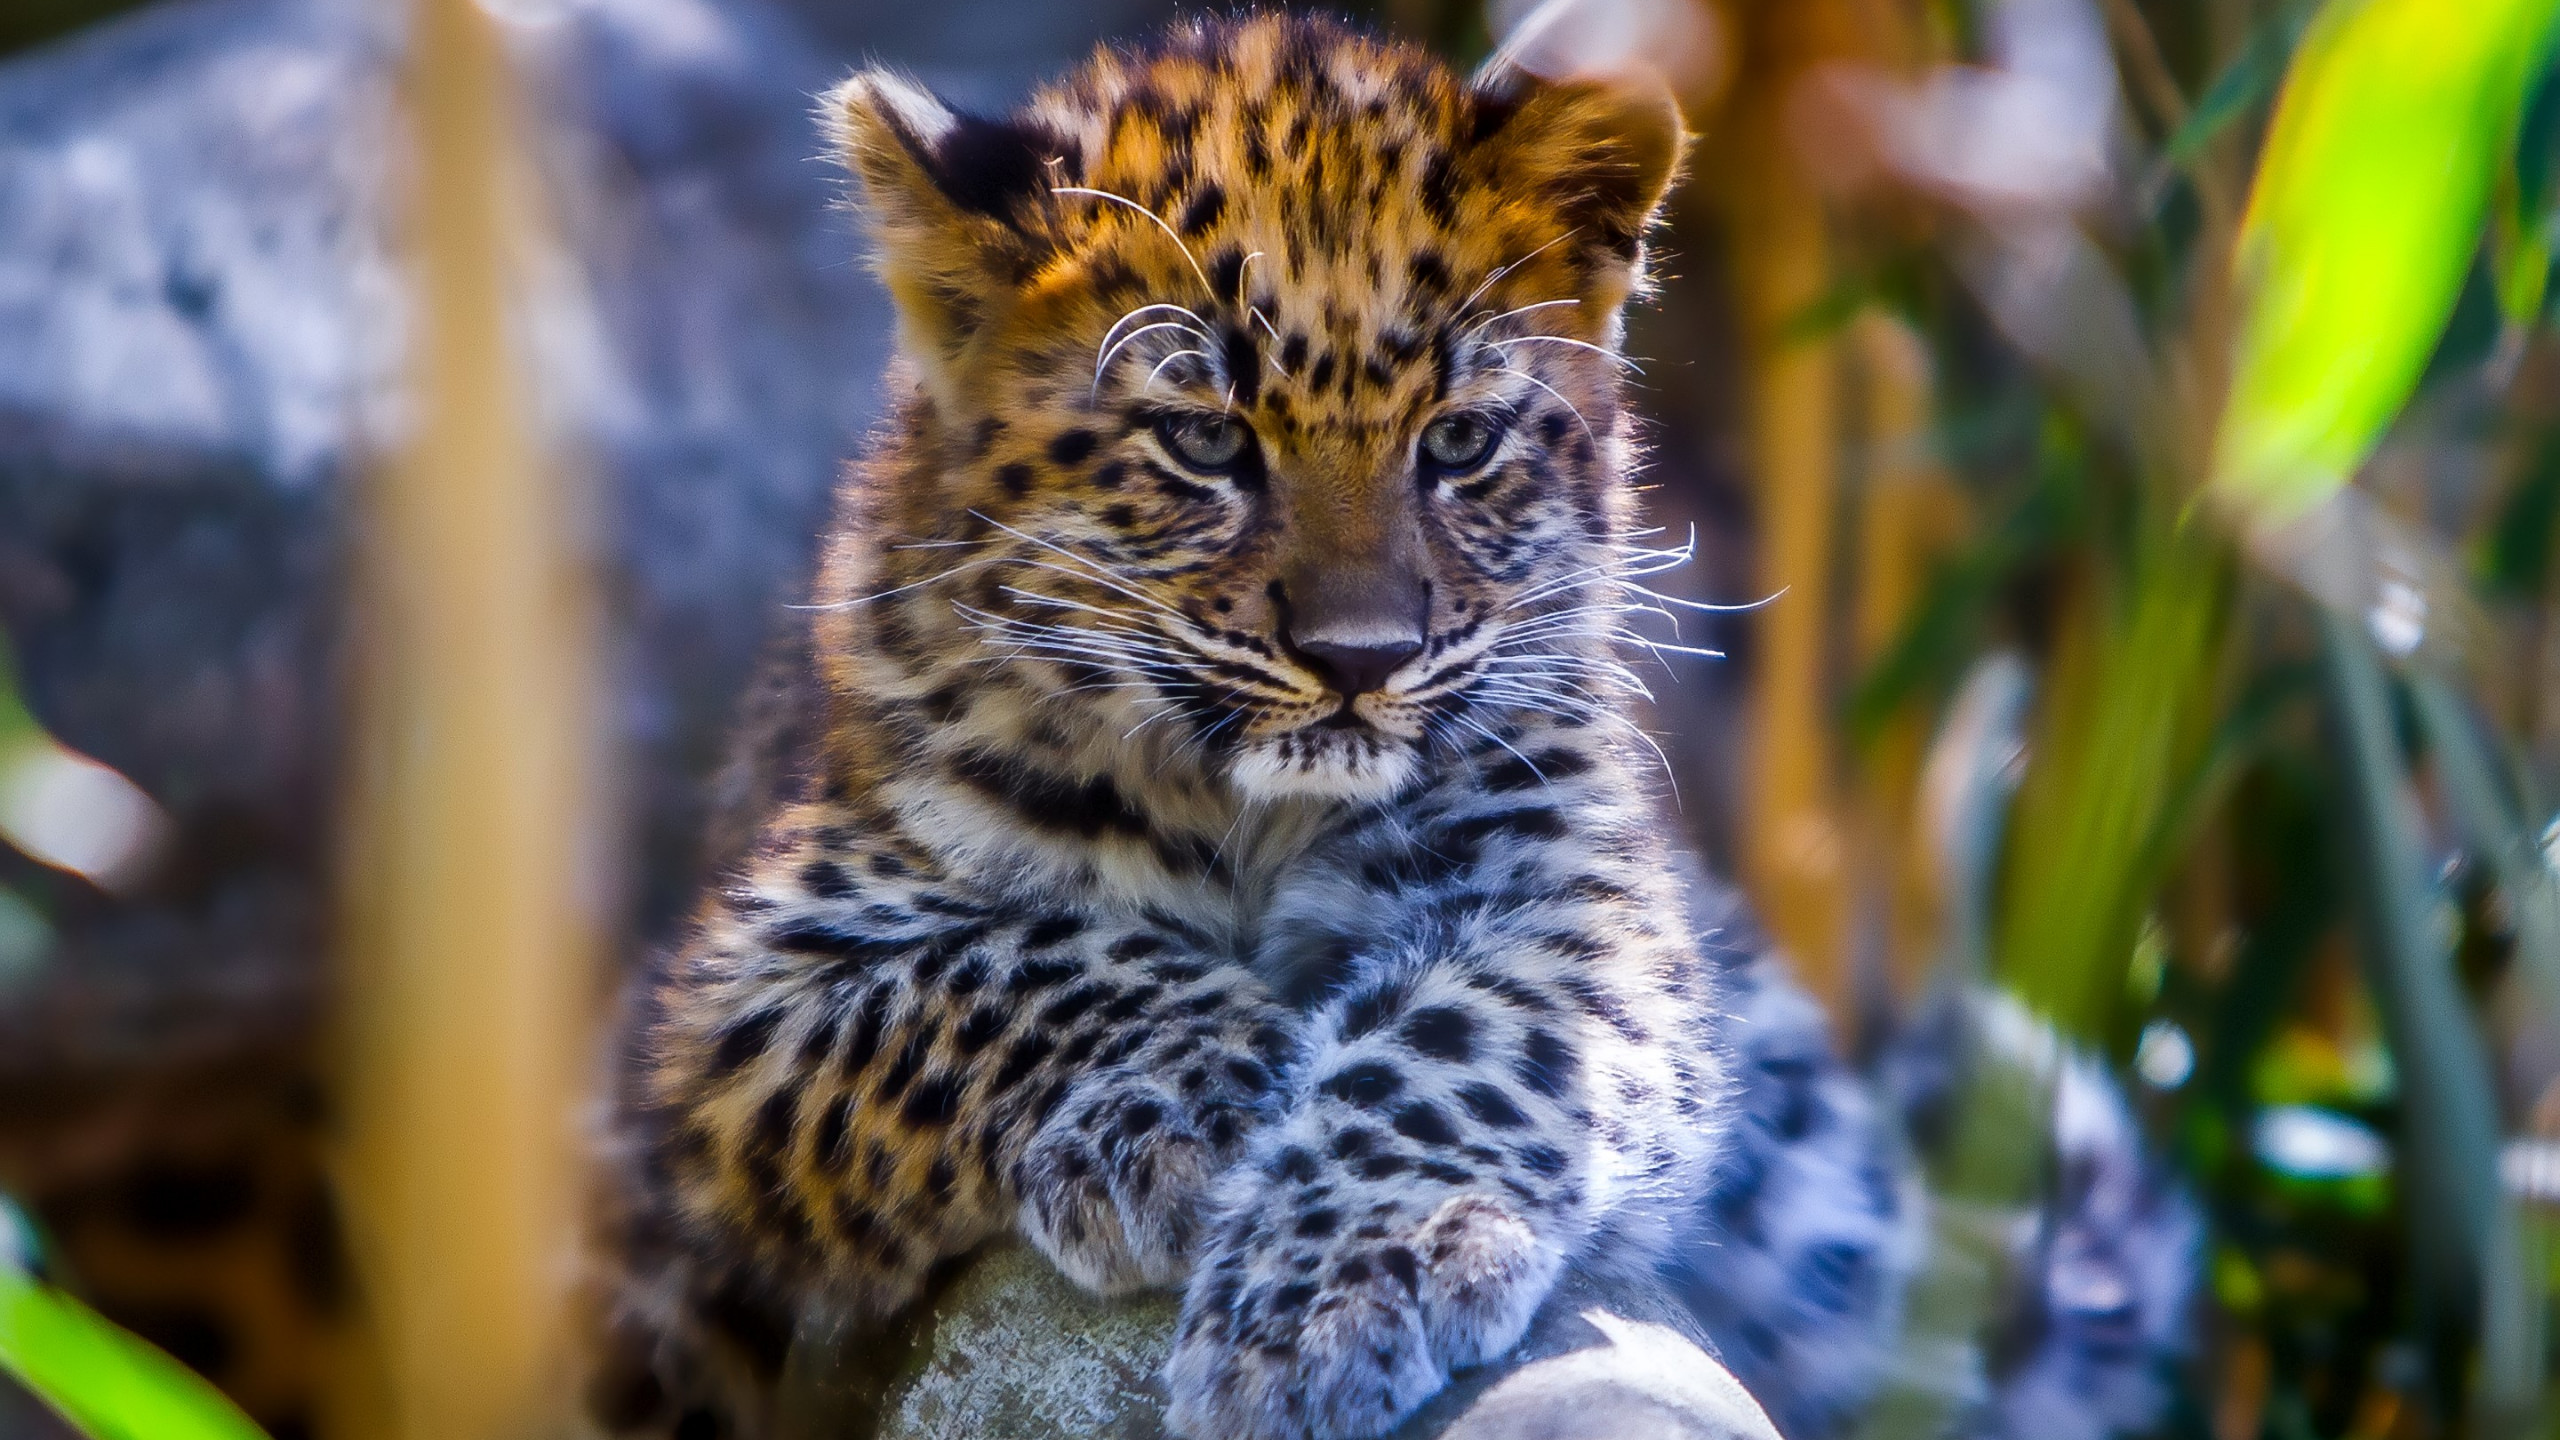 Leopard cub | 2560x1440 wallpaper